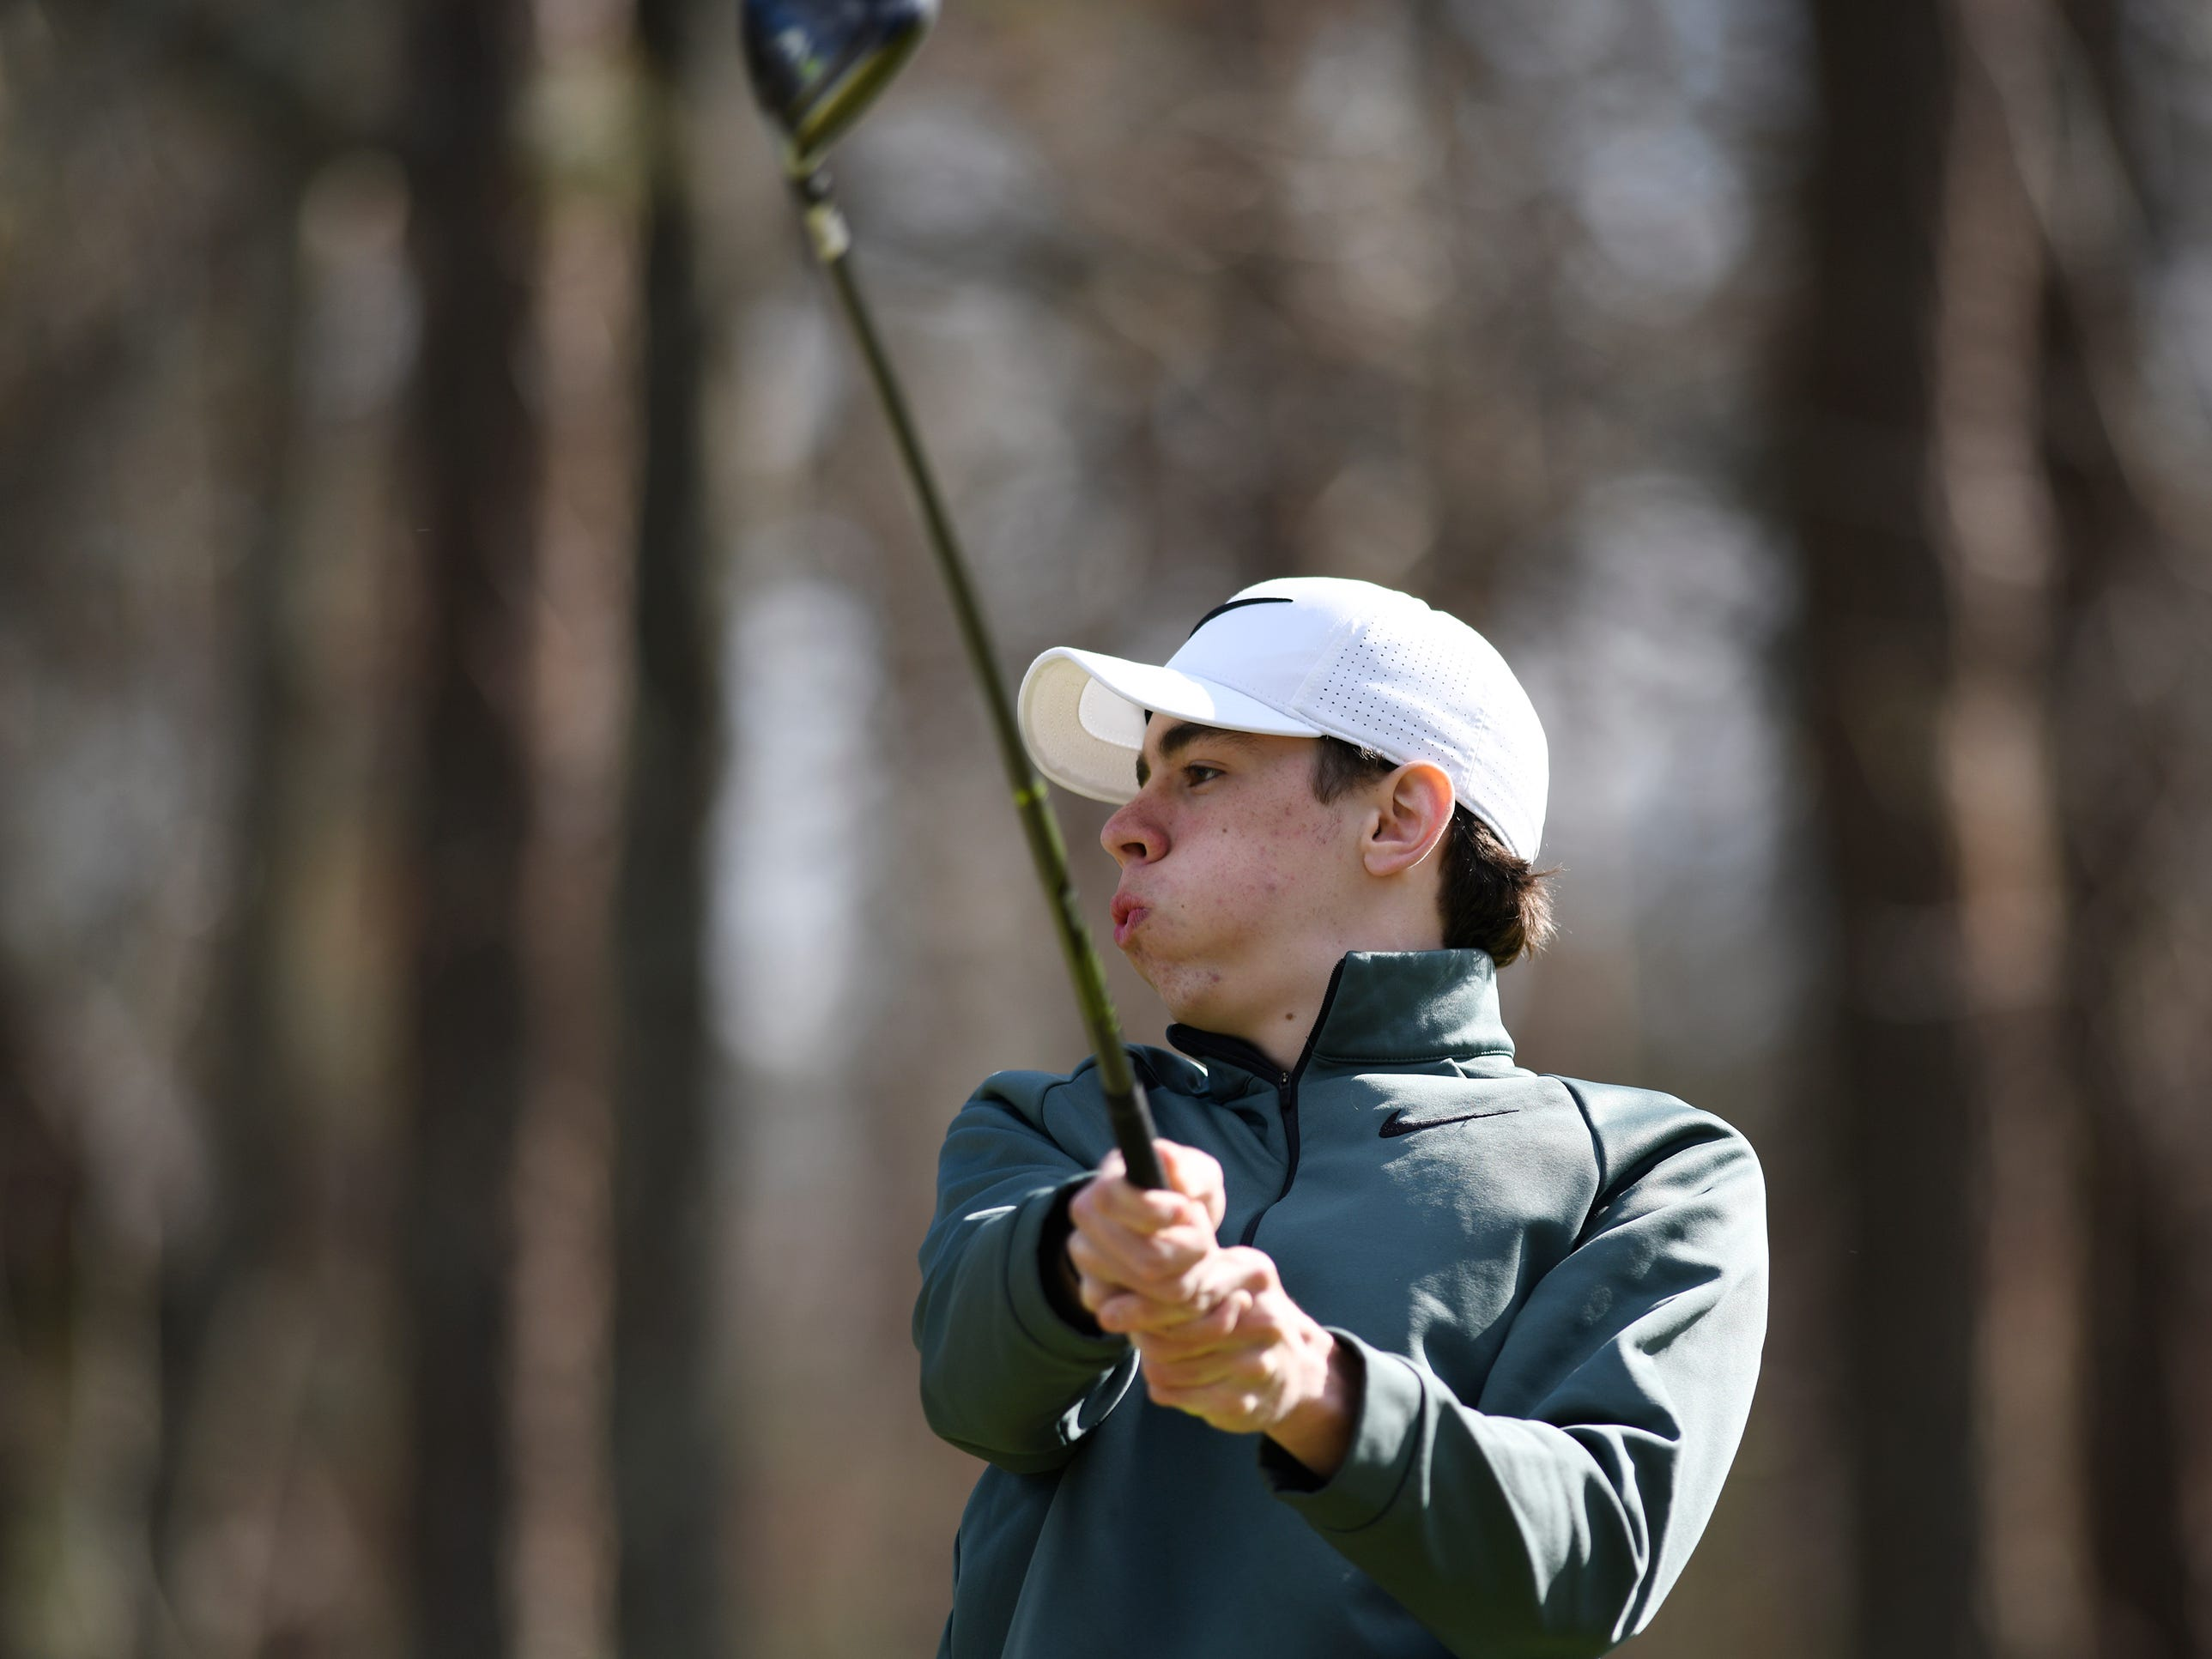 Austin Carney of Pinelands Regional High School ccompetes at the Ocean County Tournament on April 15, 2019,  at Sea Oaks in Little Egg Harbor. Toms River North's Connor Bekefi emerged as the individual champion with a 3-over-par 75, four shots better than teammate Leo Kane. Toms River North successfully defended its team title, posting a total of 336, which was 18 shots better than Southern. Brick Memorial finished third.